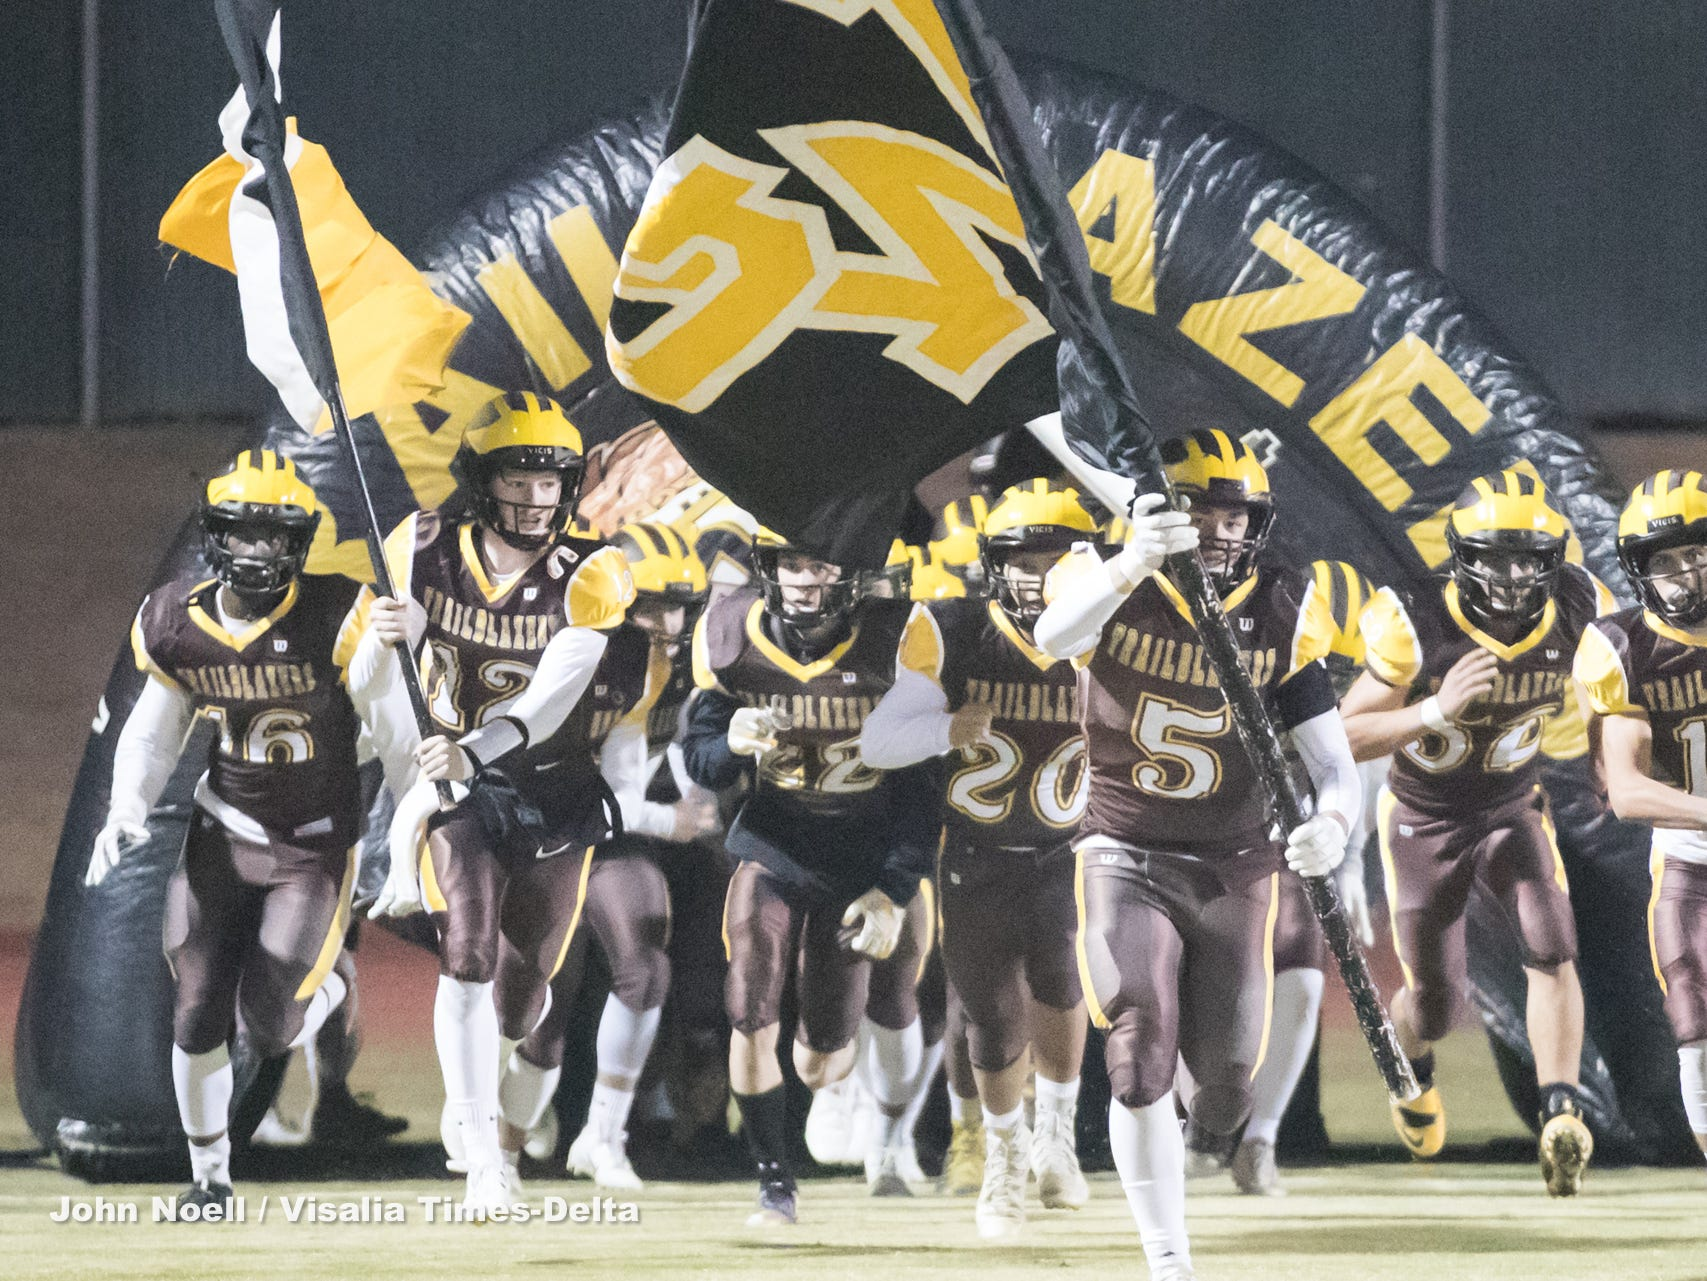 Central Section Division IV high school football semifinal playoff game between Wasco and Golden West on Friday, November 16, 2018.